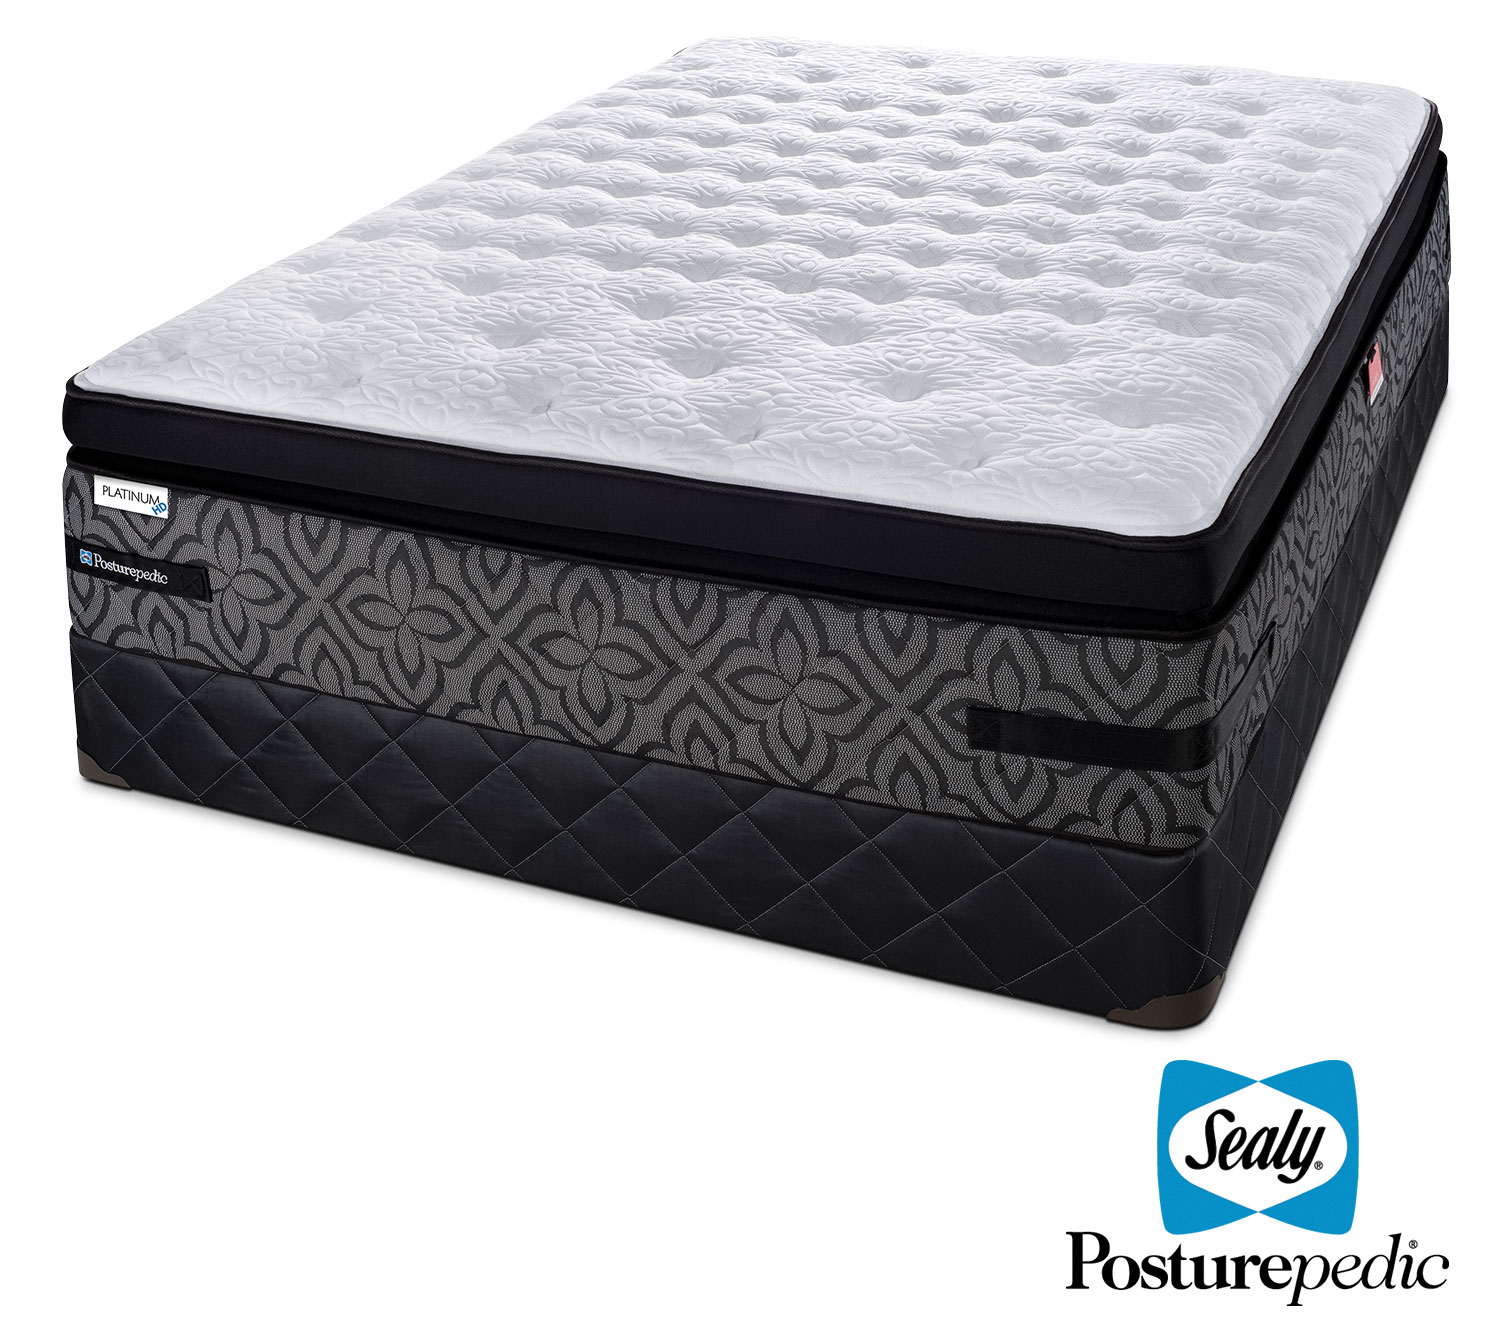 Mattresses and Bedding - Sealy Posturepedic 3 K Cushion Firm Queen Mattress and Boxspring Set